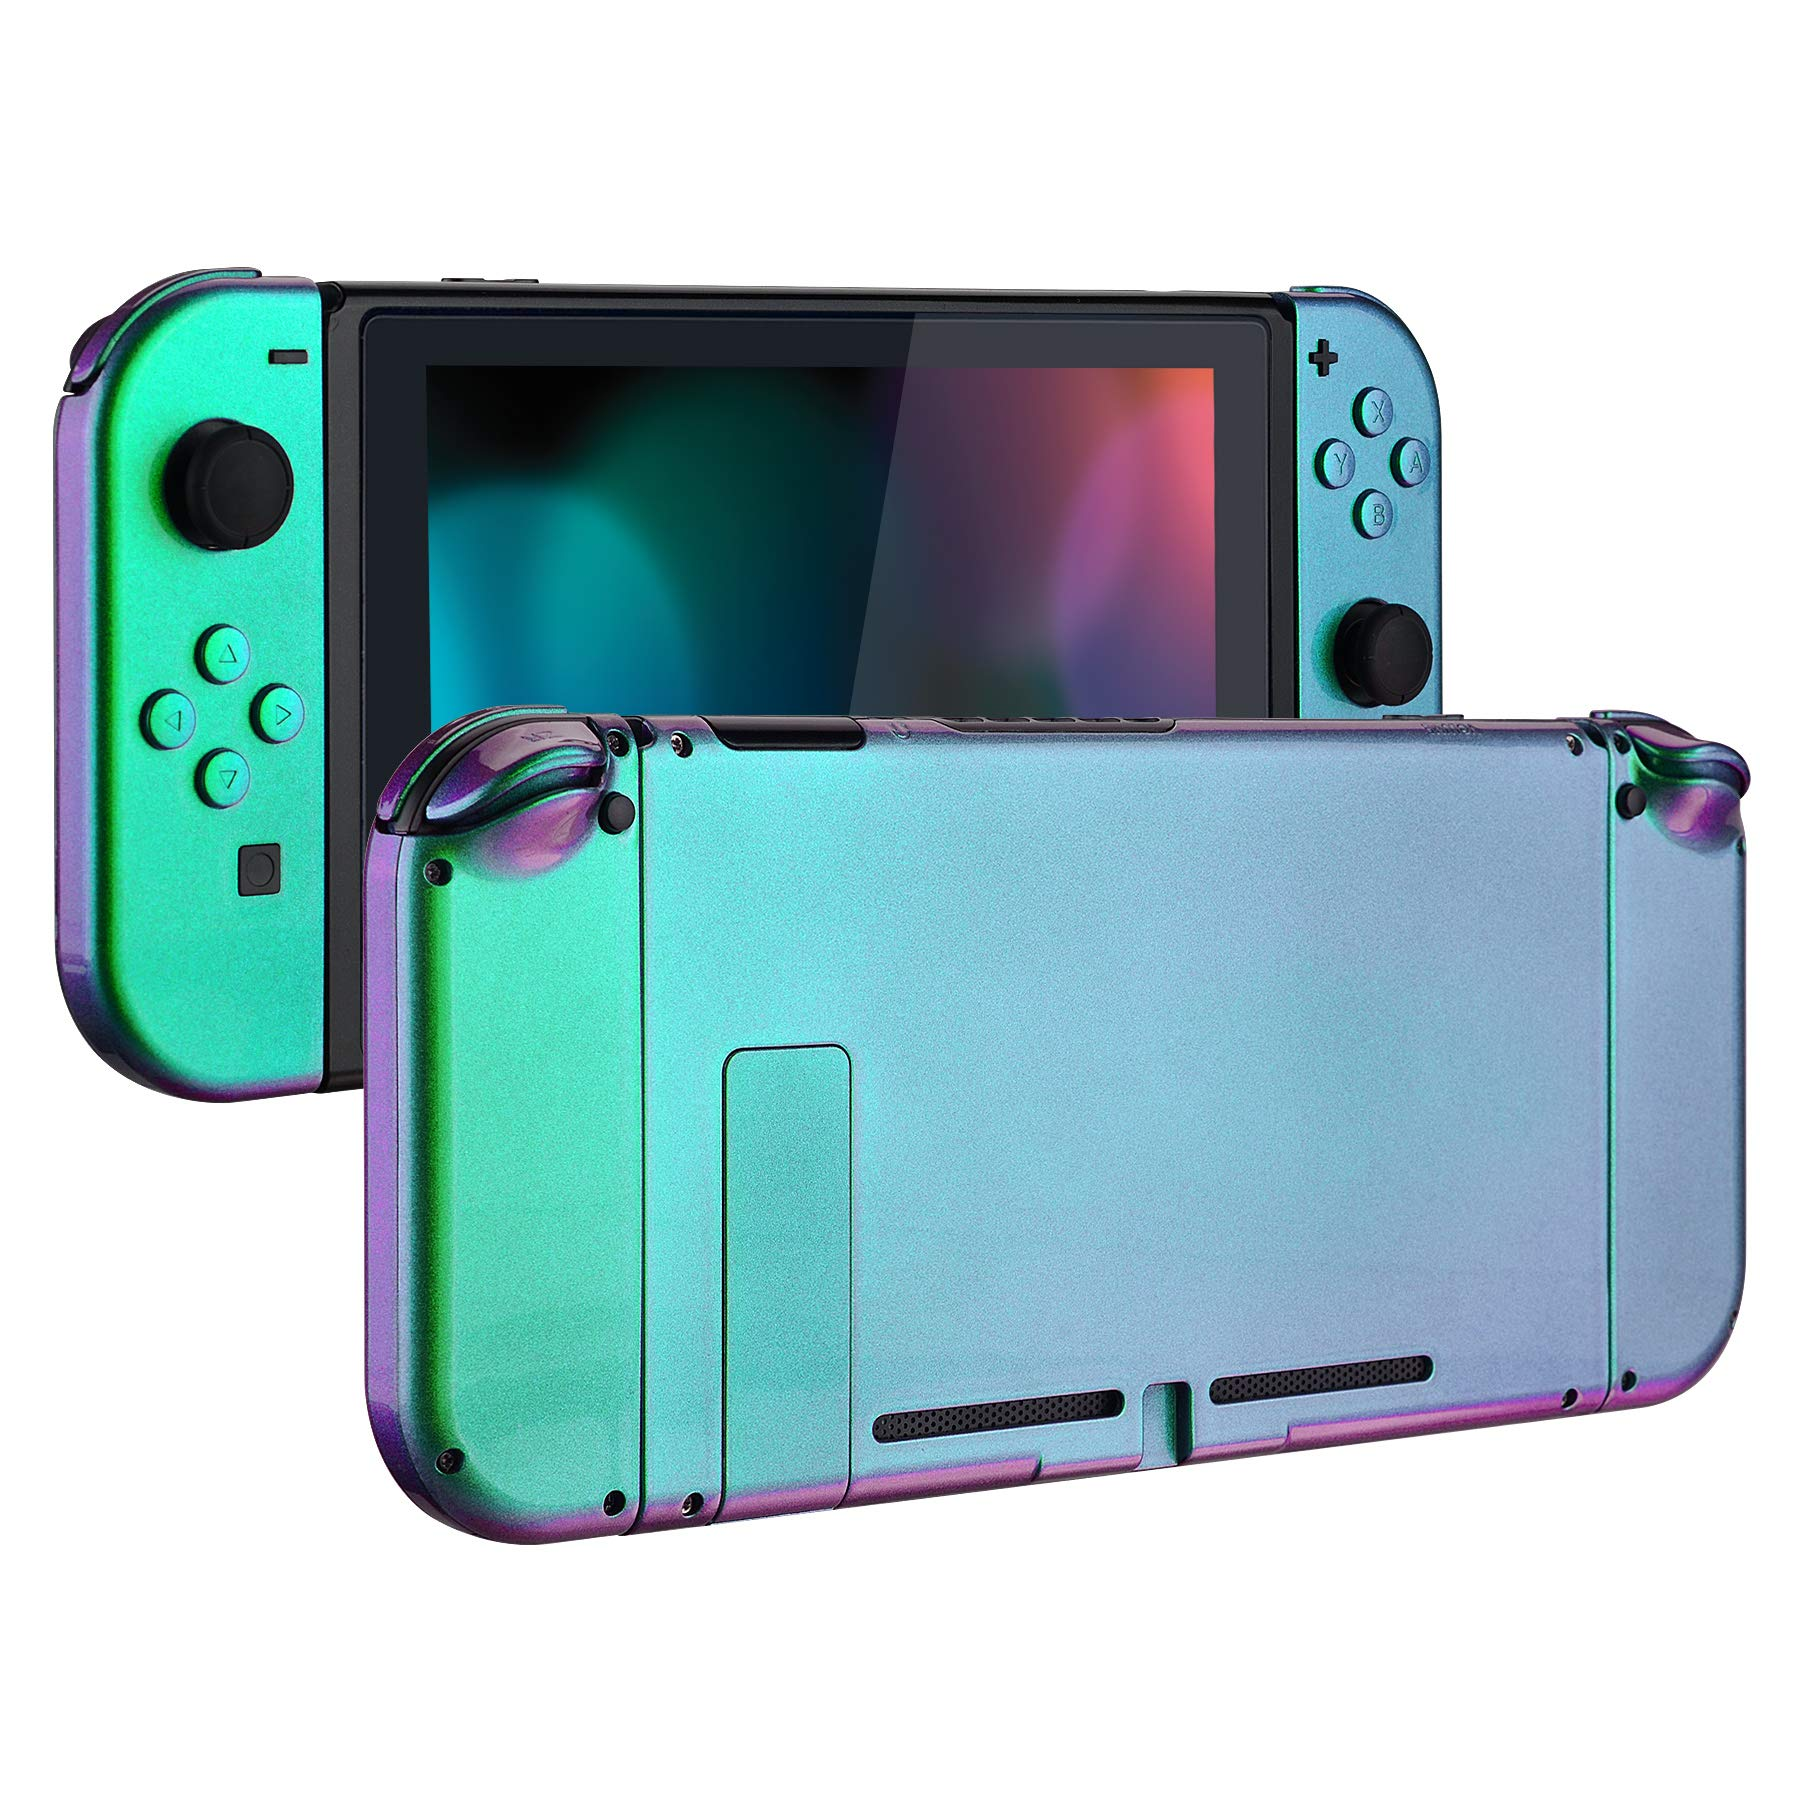 eXtremeRate Glossy Back Plate for Nintendo Switch Console, NS Joycon Handheld Controller Housing with Full Set Buttons, DIY Replacement Shell for Nintendo Switch - Chameleon Green Purple